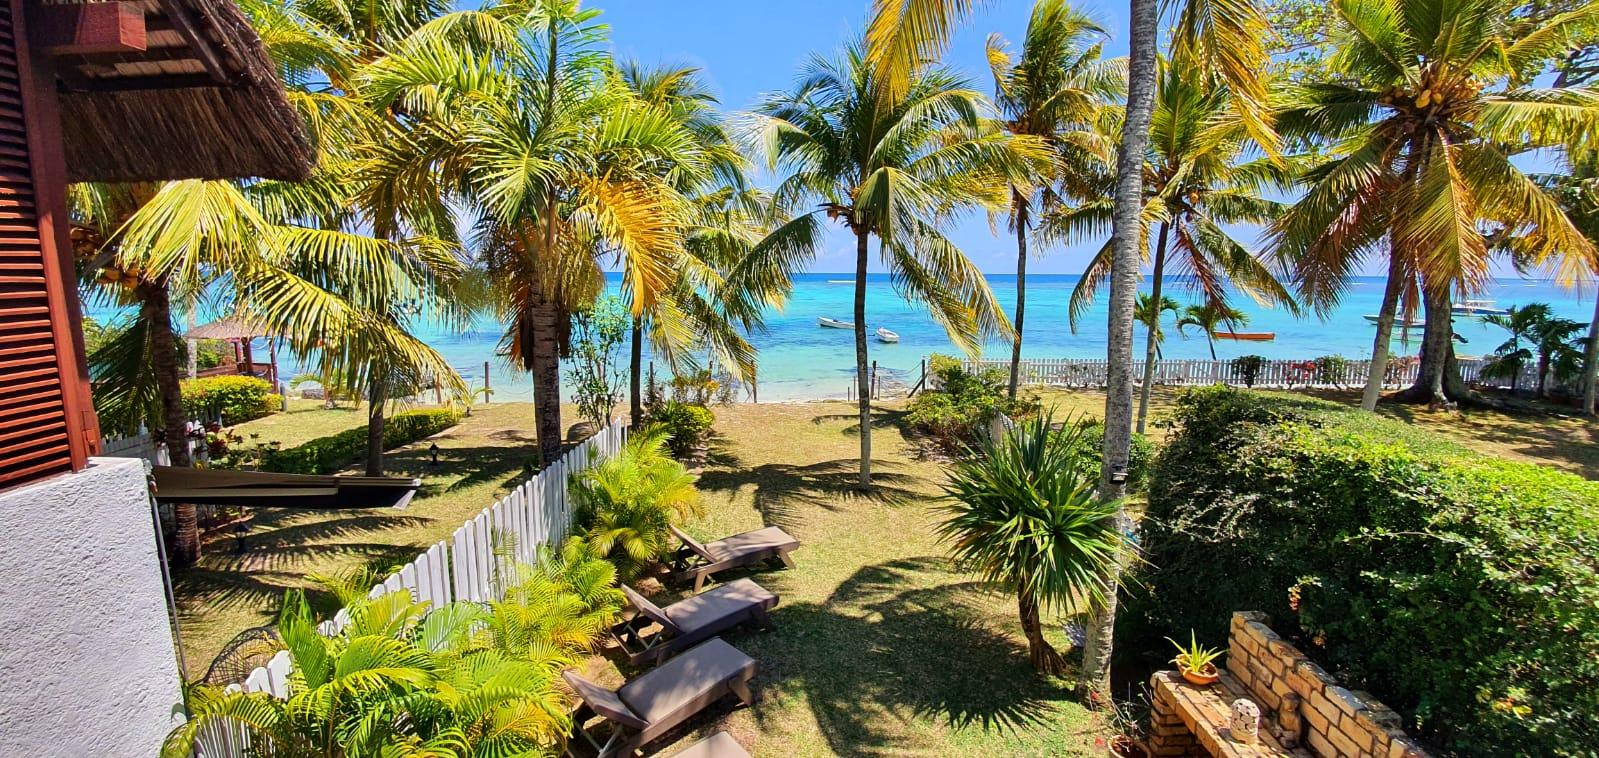 FOR SALE –  Magnificent beachfront duplex furnished and equipped of 131 m2on a land of 34 toisesenjoys an exceptional panoramic view of the crystal clear lagoon of Trou aux Biches